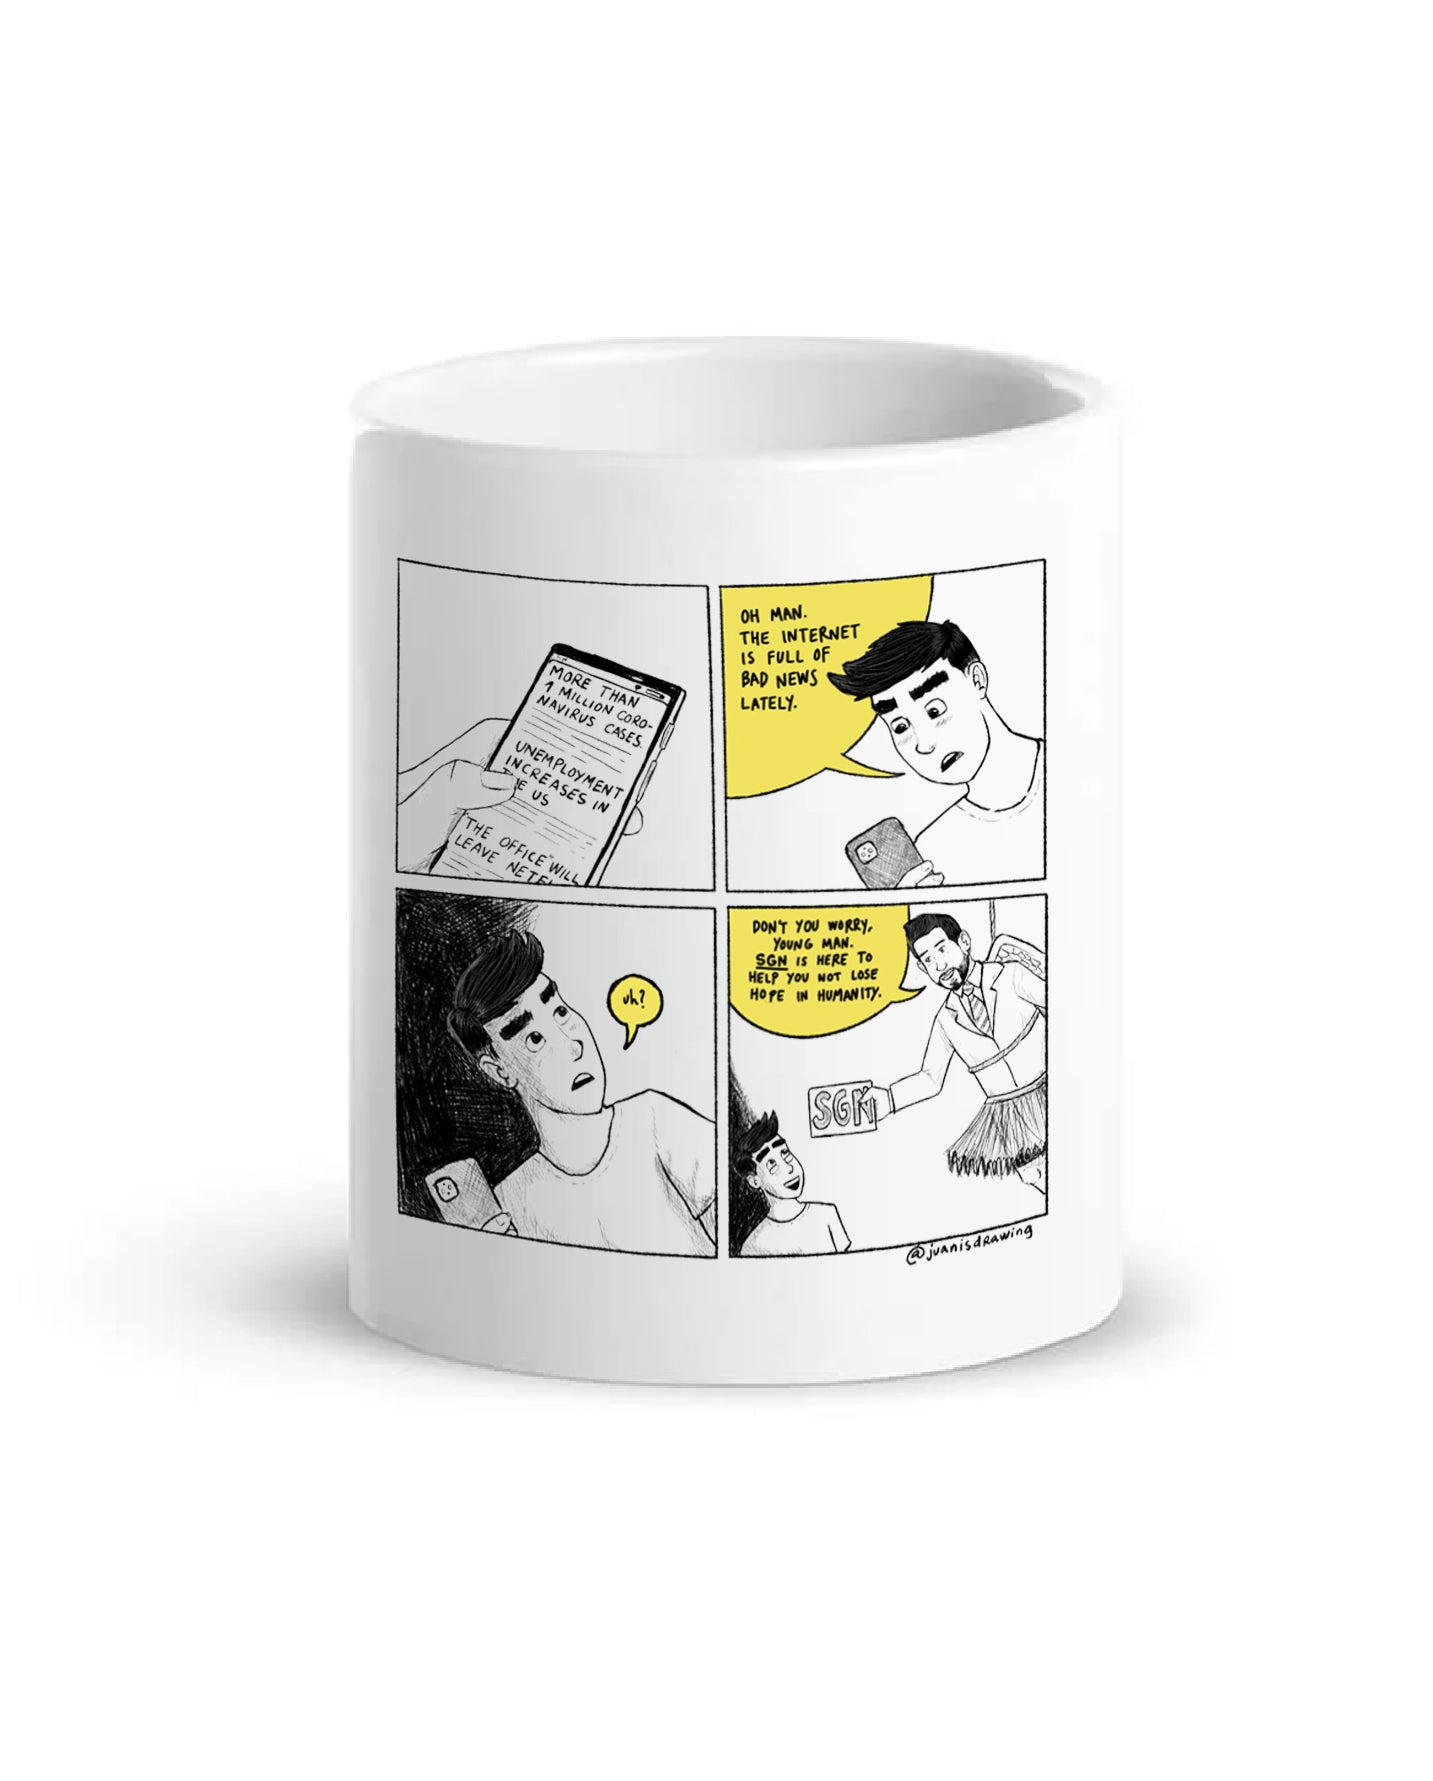 SGN Comic Coffee Mug